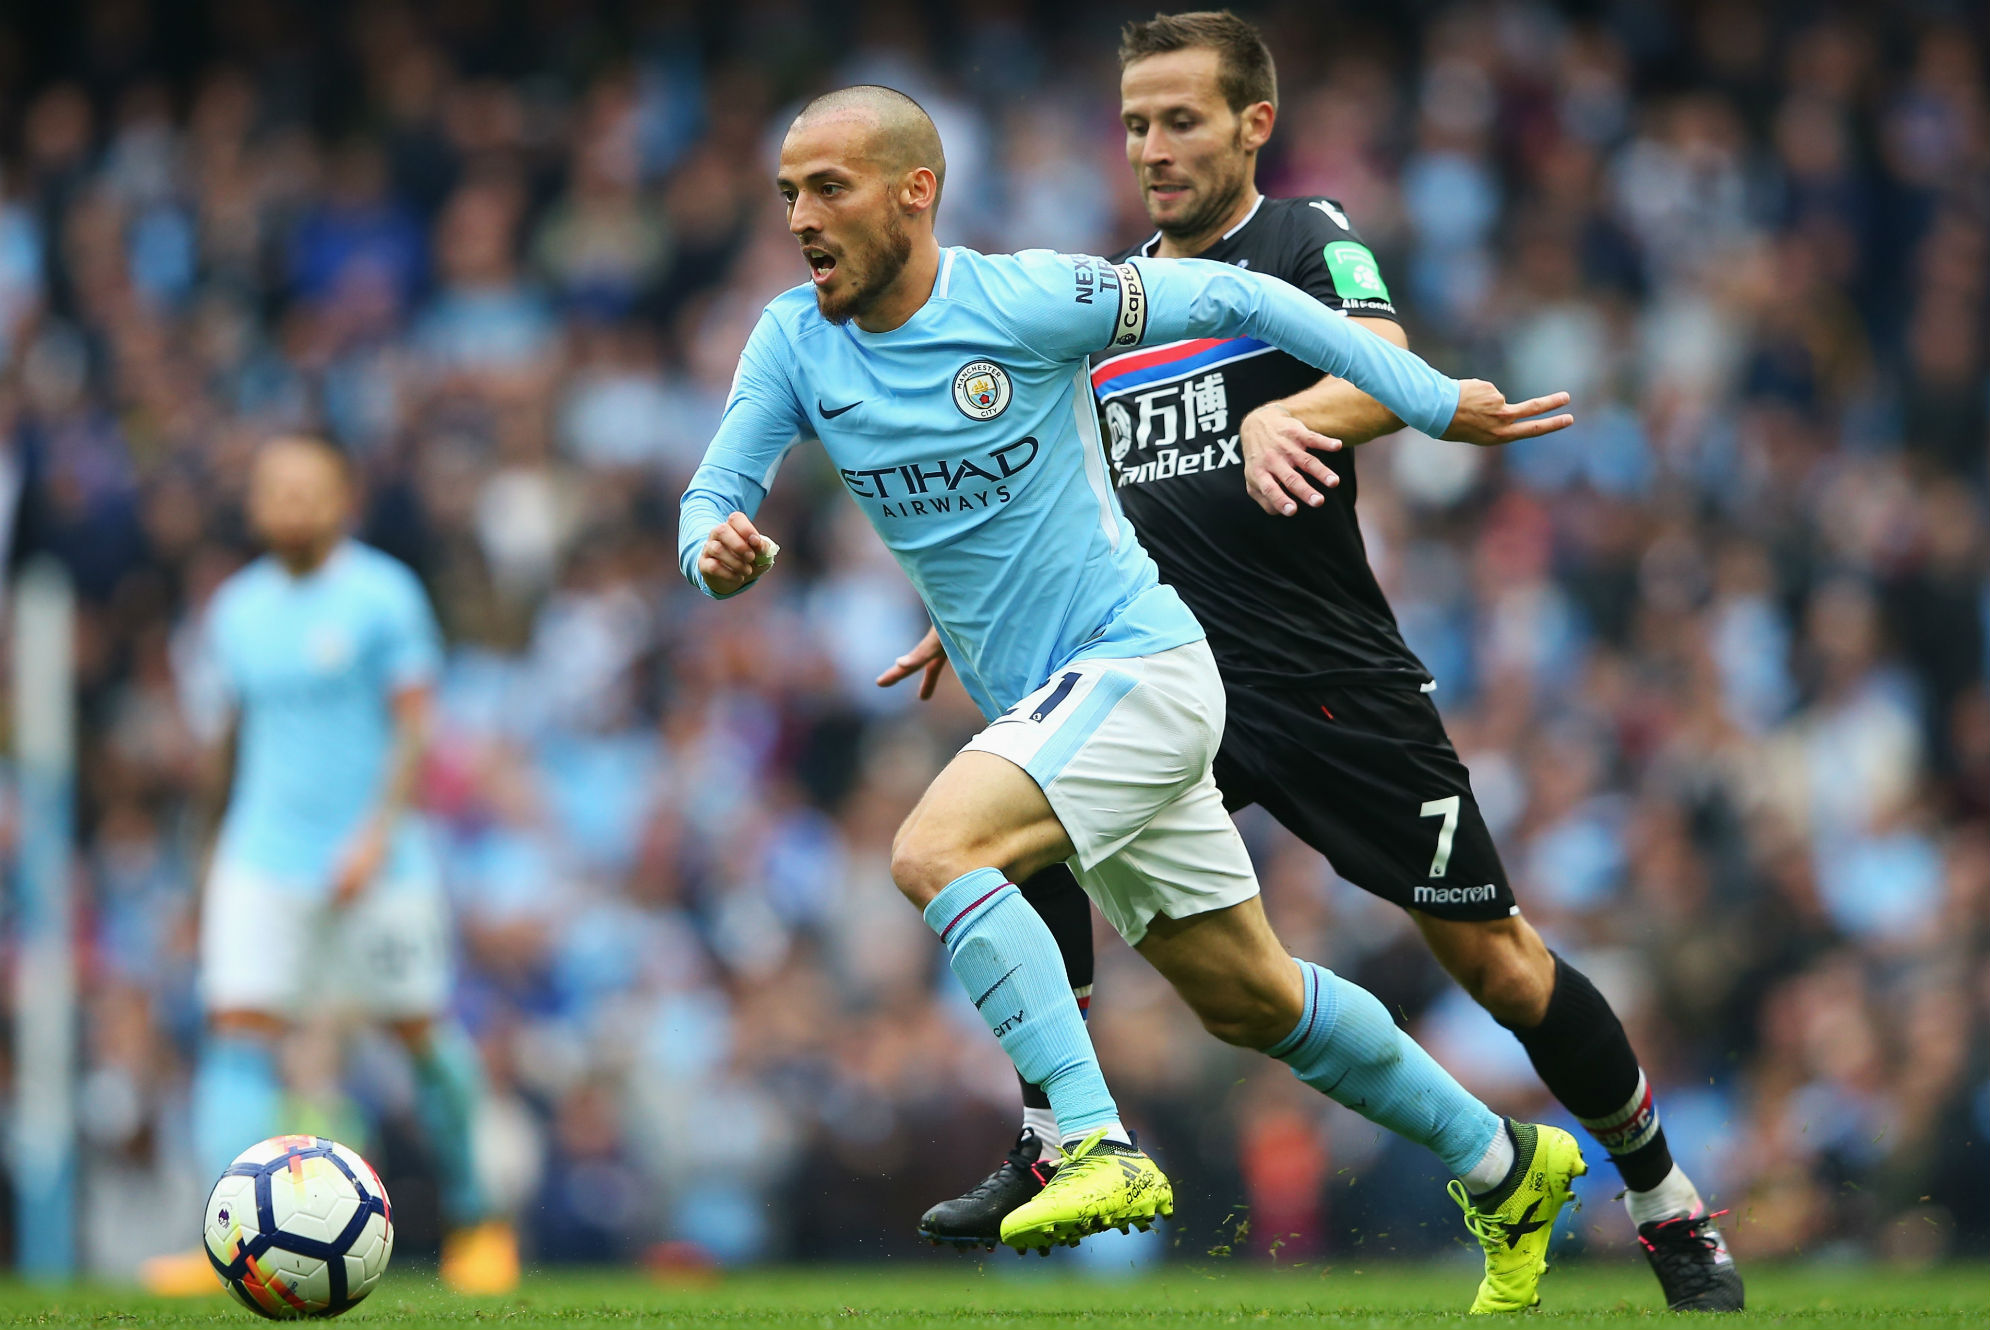 Manchester City's David Silva says his trophy-laden career with the English Premier League (EPL) club has exceeded his wildest dreams. The 34-year-old Spaniard said this on Saturday as he was preparing for his final league game against Norwich City on Sunday. He has won 11 trophies in 10 seasons with Manchester City, including four Premier […]